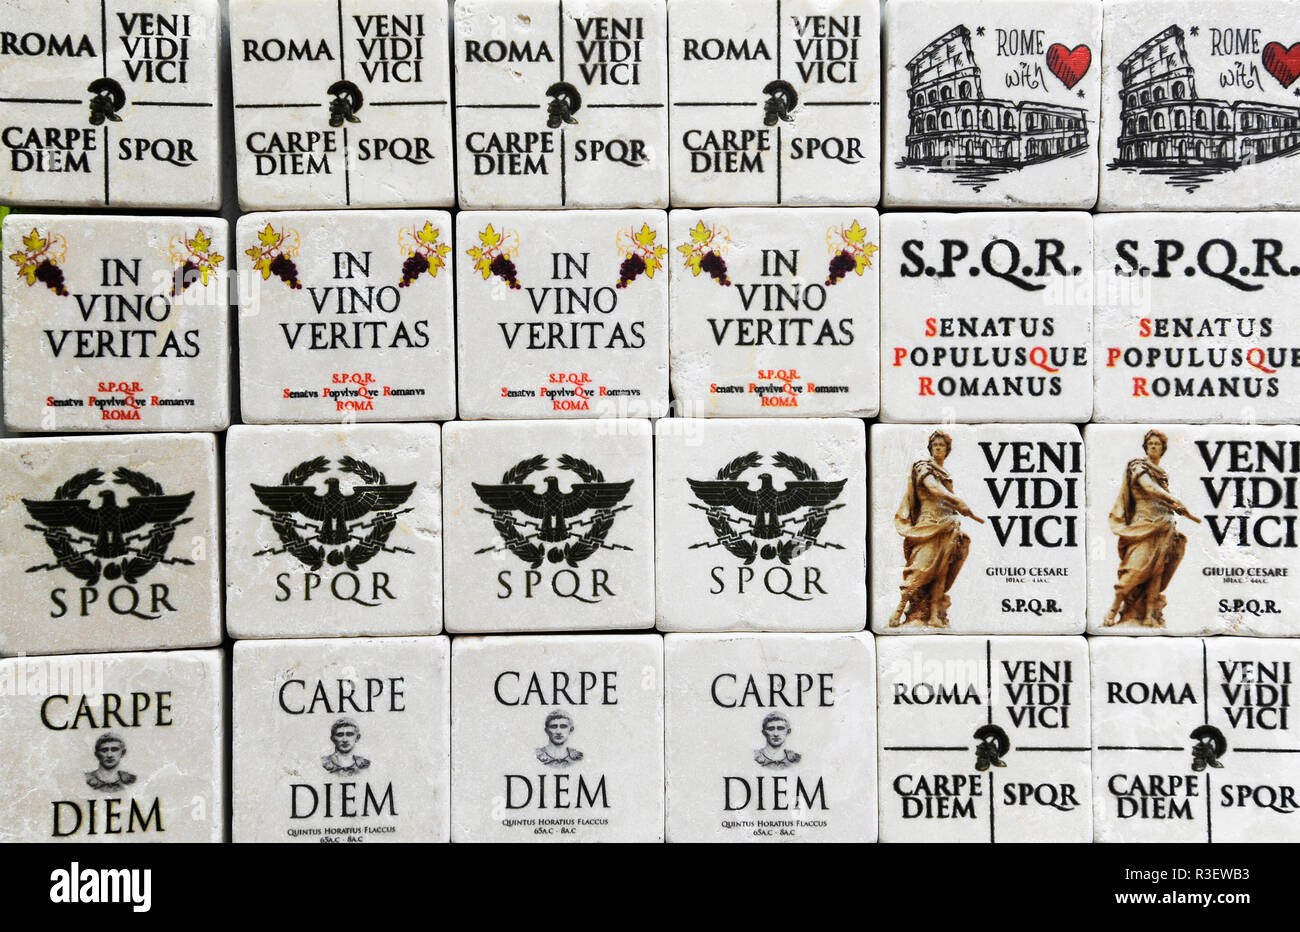 Famous Latin phrases used for souvenirs in Rome (I came, I saw, I conquered - seize the day). Rome, Italy - Stock Image